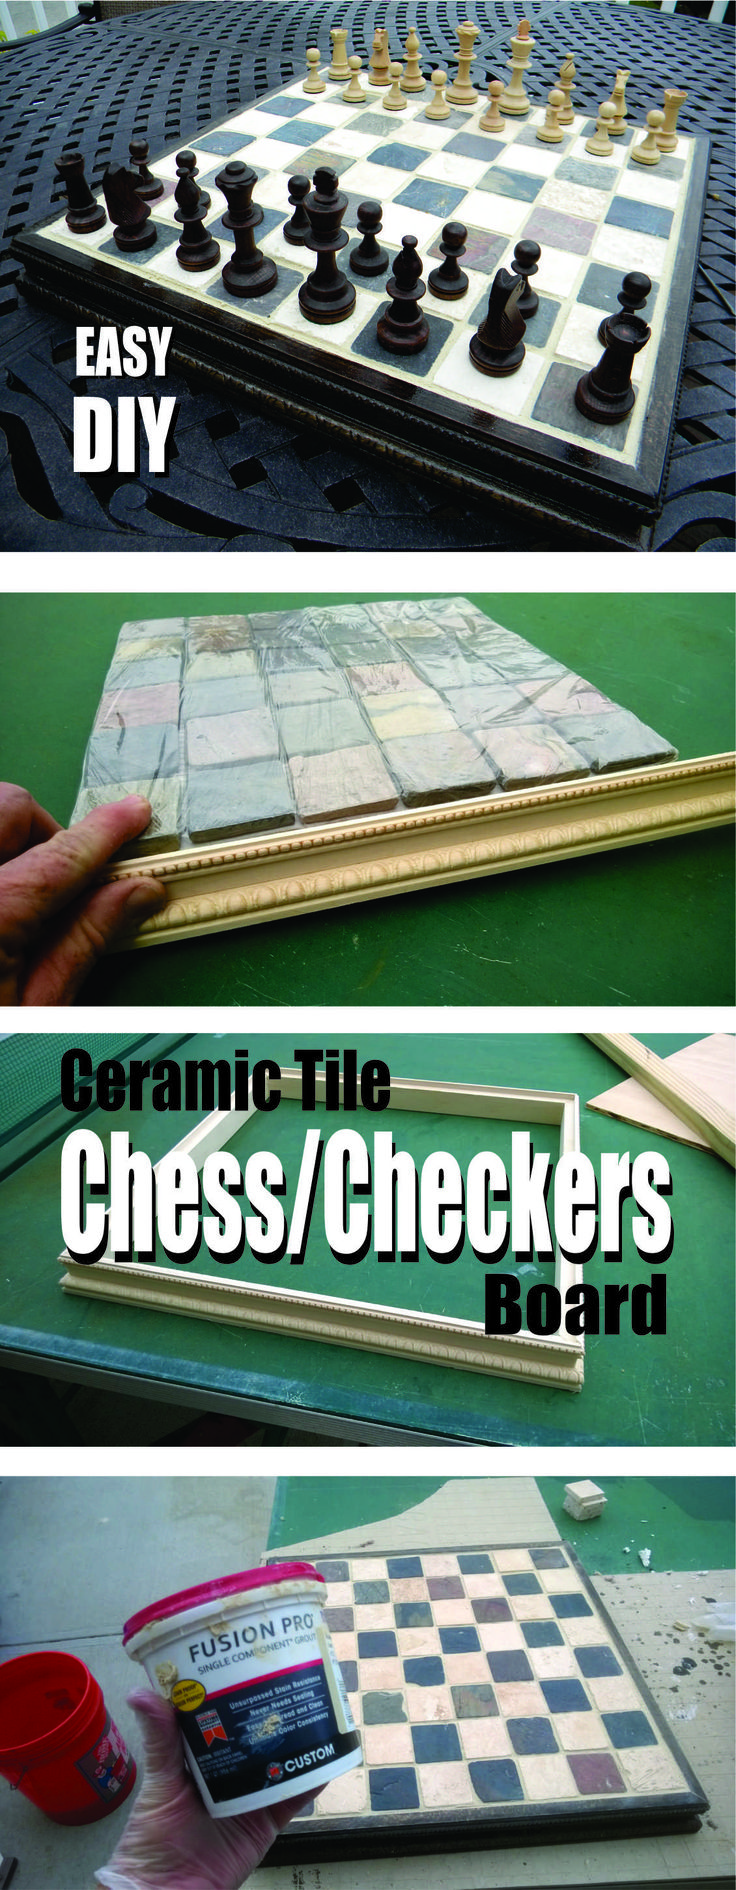 Easy DIY ceramic tile chess or checkers board. www.DIYeasycrafts.com